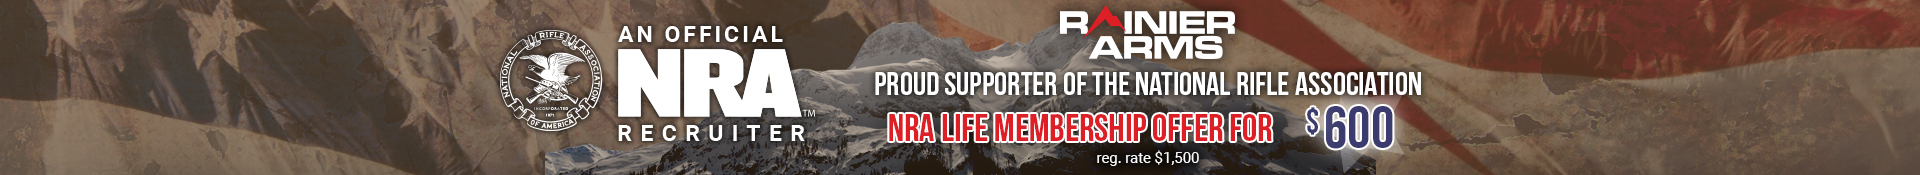 NRA - Join the fight